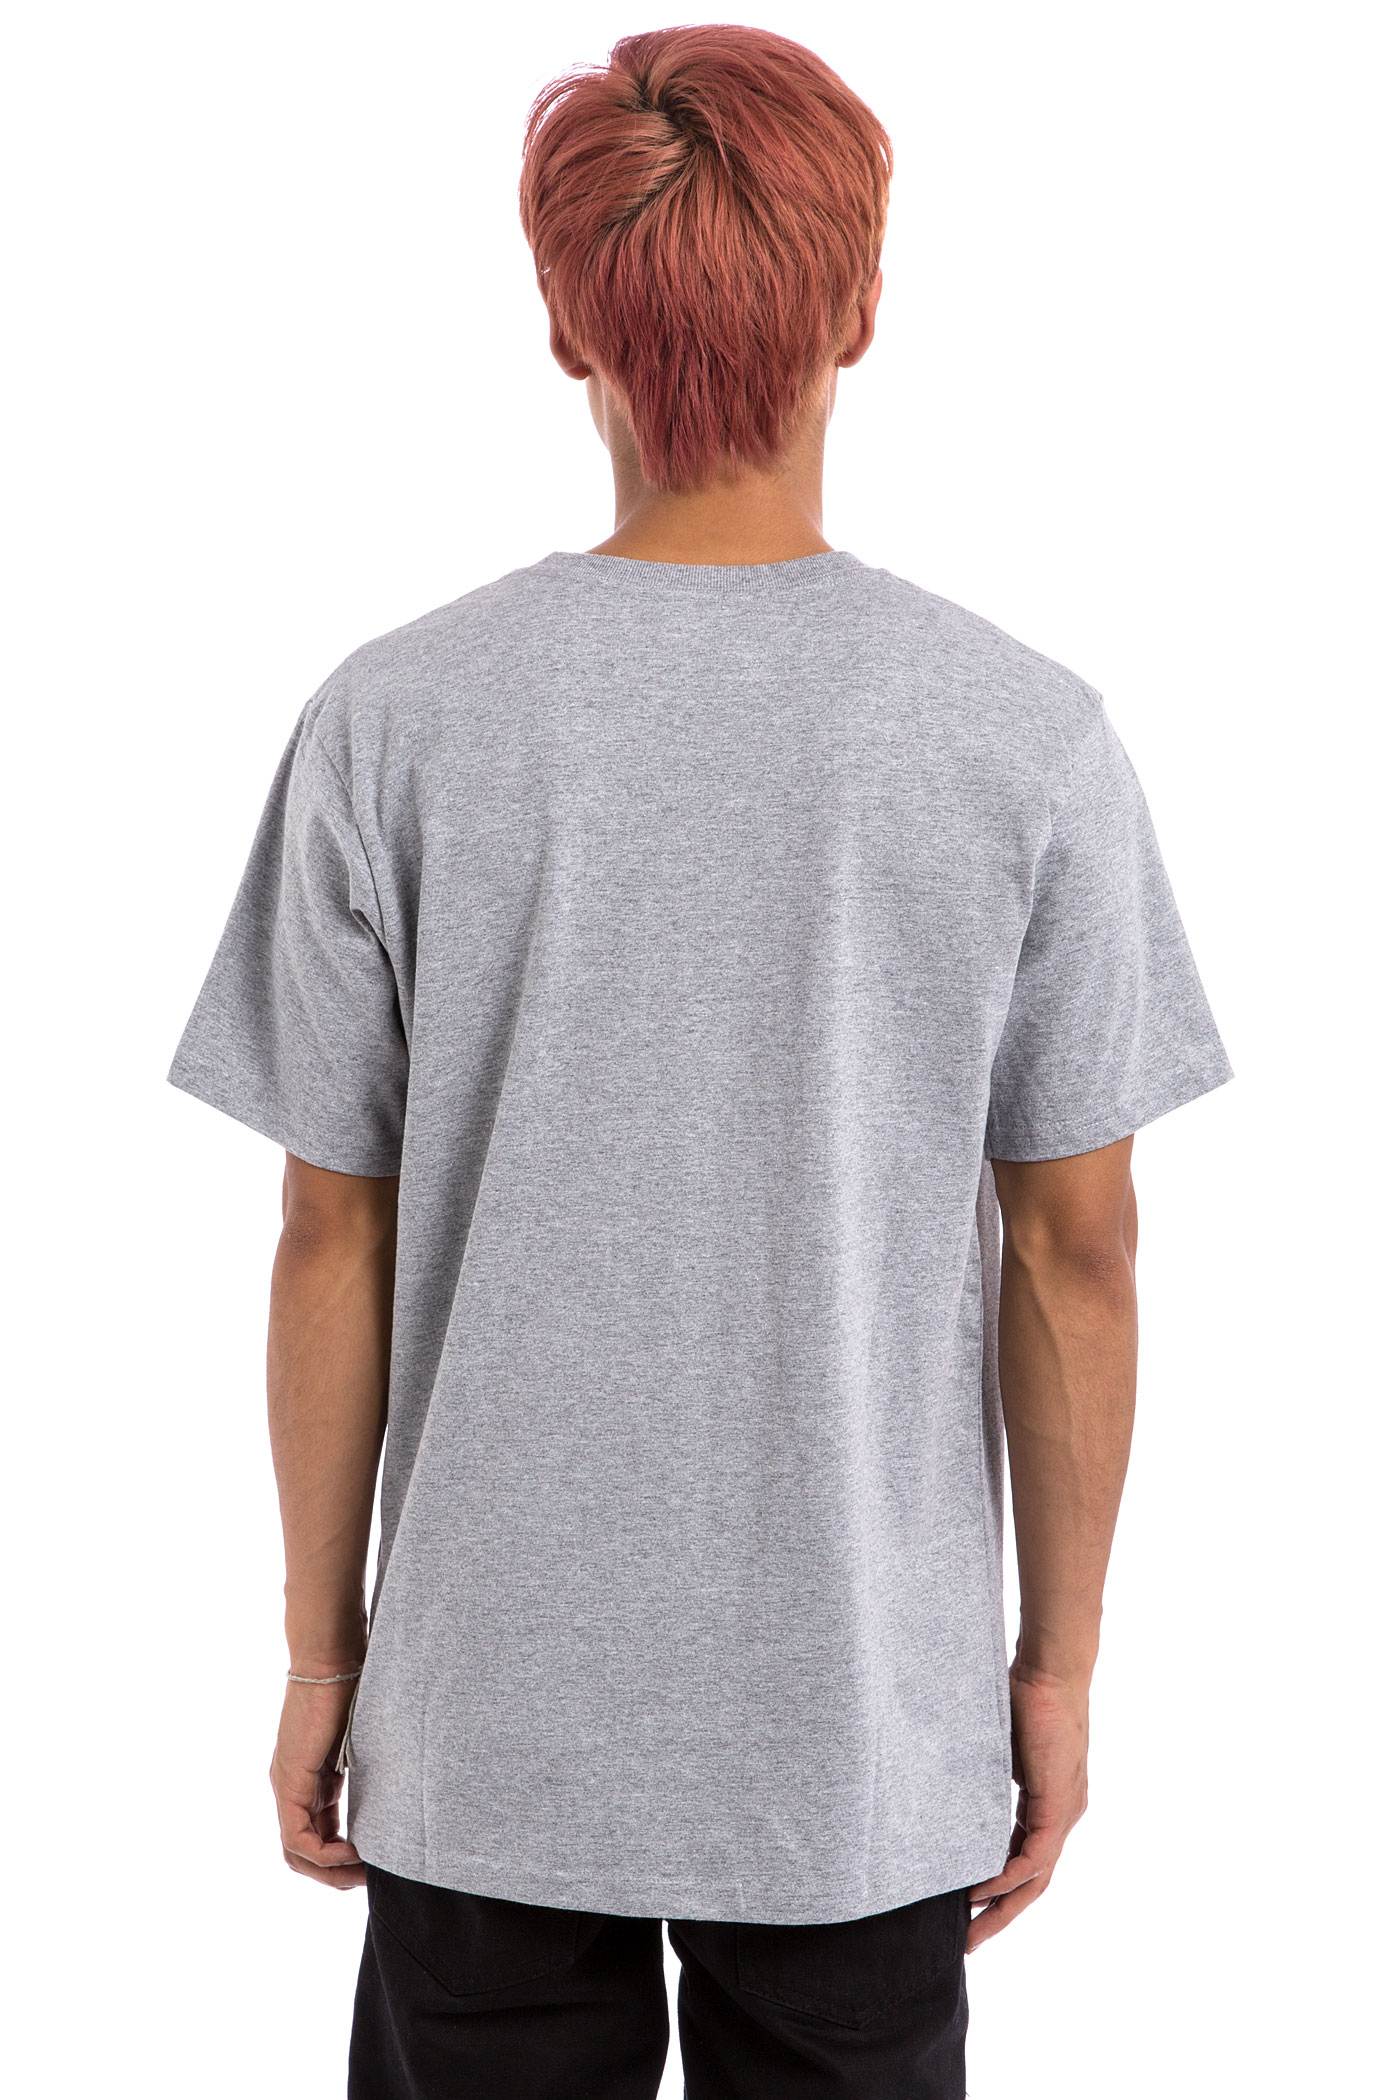 Dc Star T Shirt Heather Grey Buy At Skatedeluxe